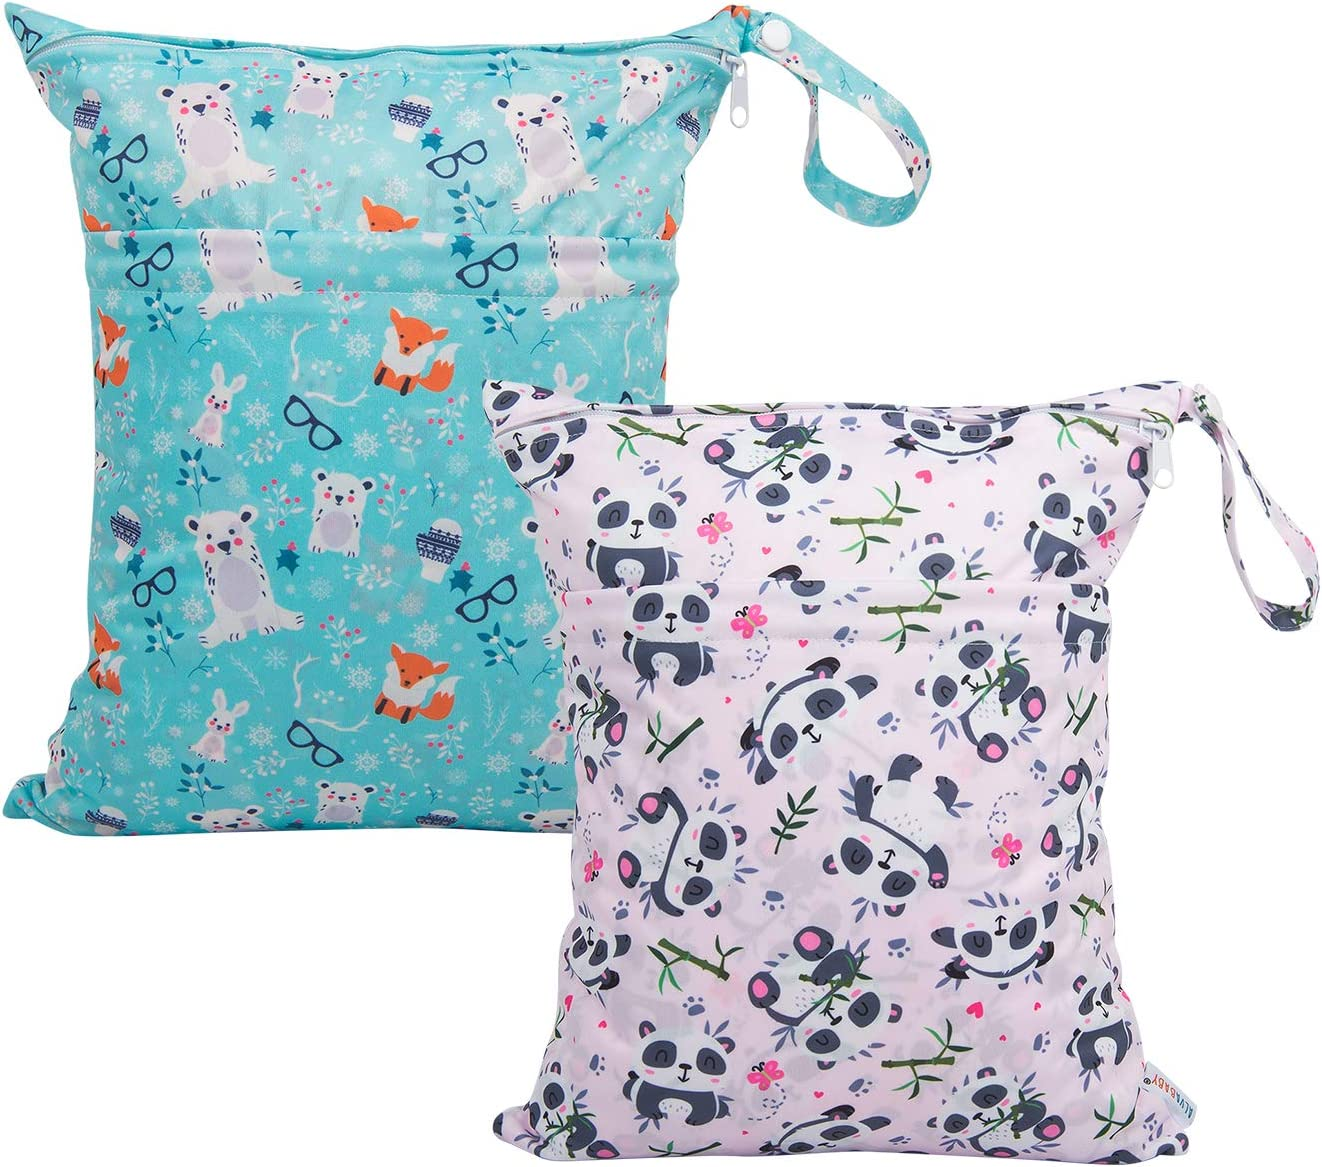 ALVABABY Cloth Diaper Wet Dry Bags Waterproof Reusable Washable with Two Zippered Pockets Travel,Beach,Pool,Daycare Soiled Baby Items Yoga Gym Bag for Swimsuits or Wet Clothes 2 Pack L-YX4345-CA